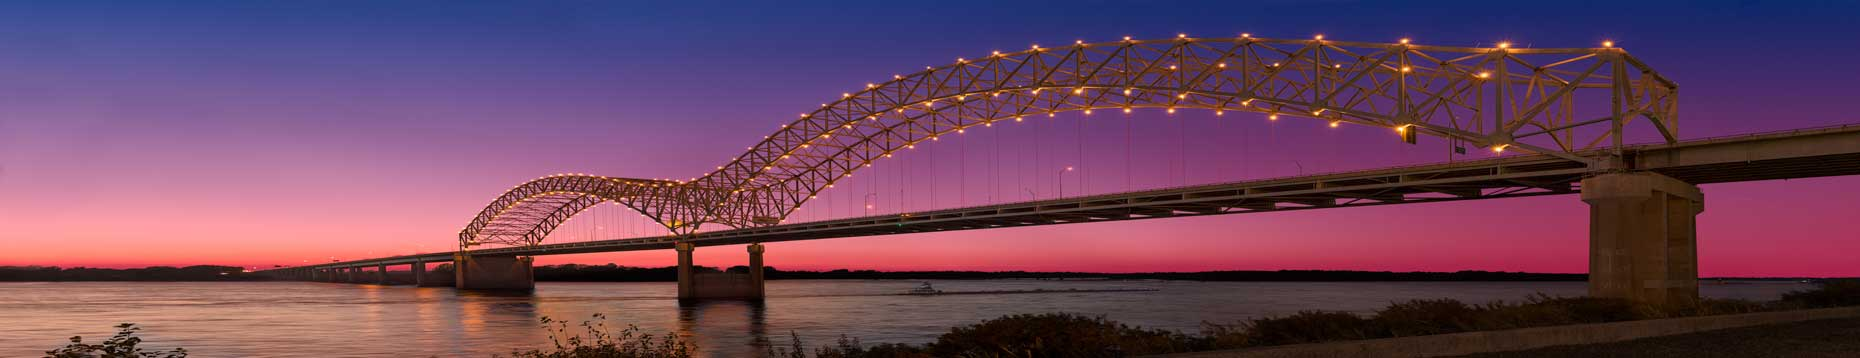 Exterior twilight view of the Memphis (Hernando de Soto) Bridge